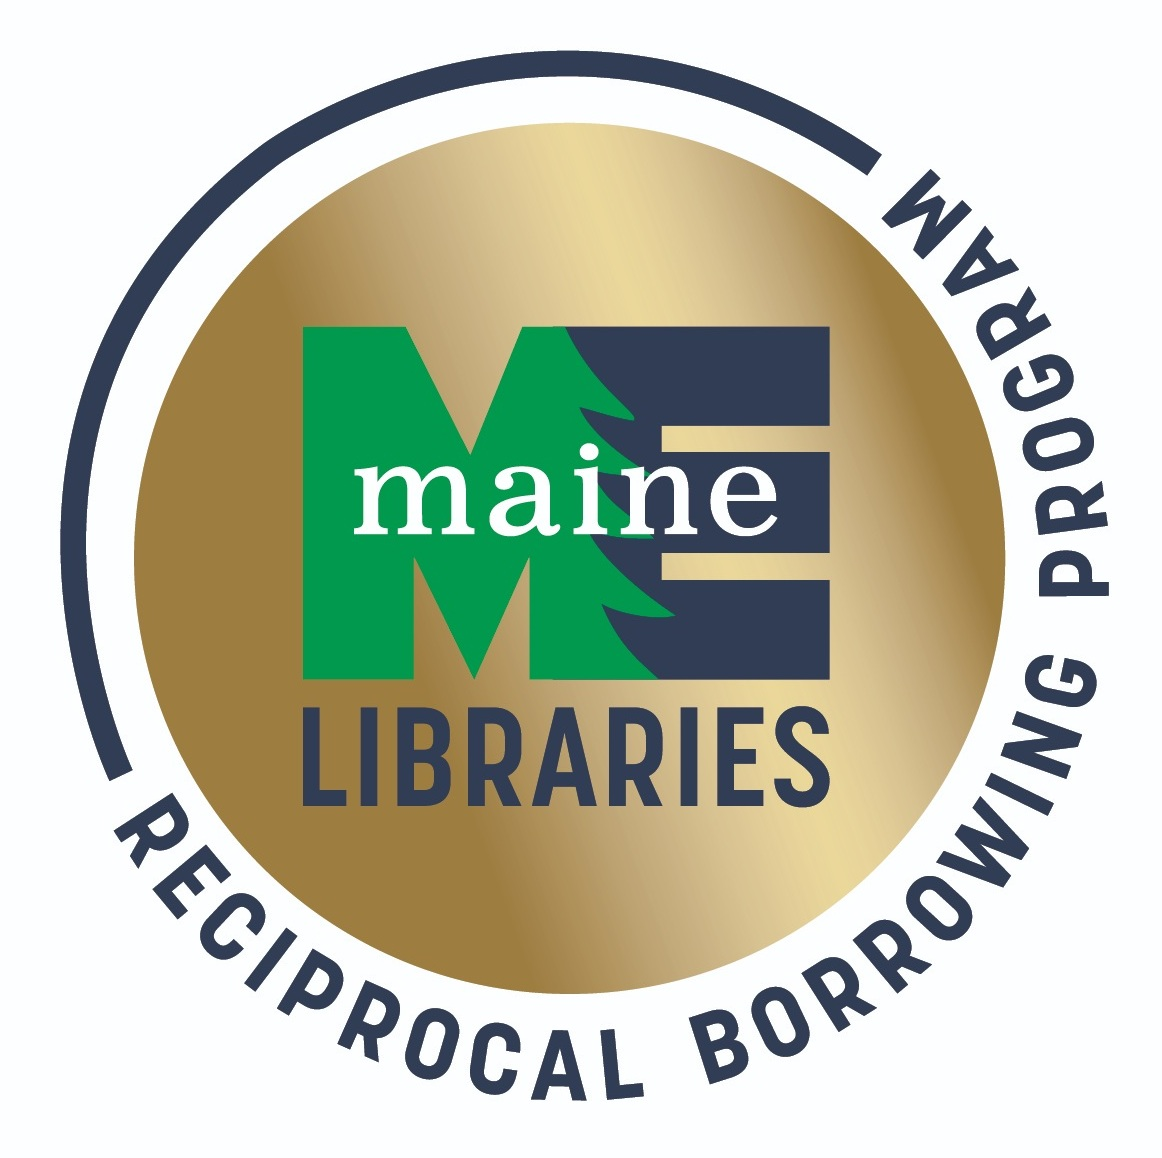 We are a participating library in the Maine Libraries Reciprocal Borrowing Program! Click here to find out more!